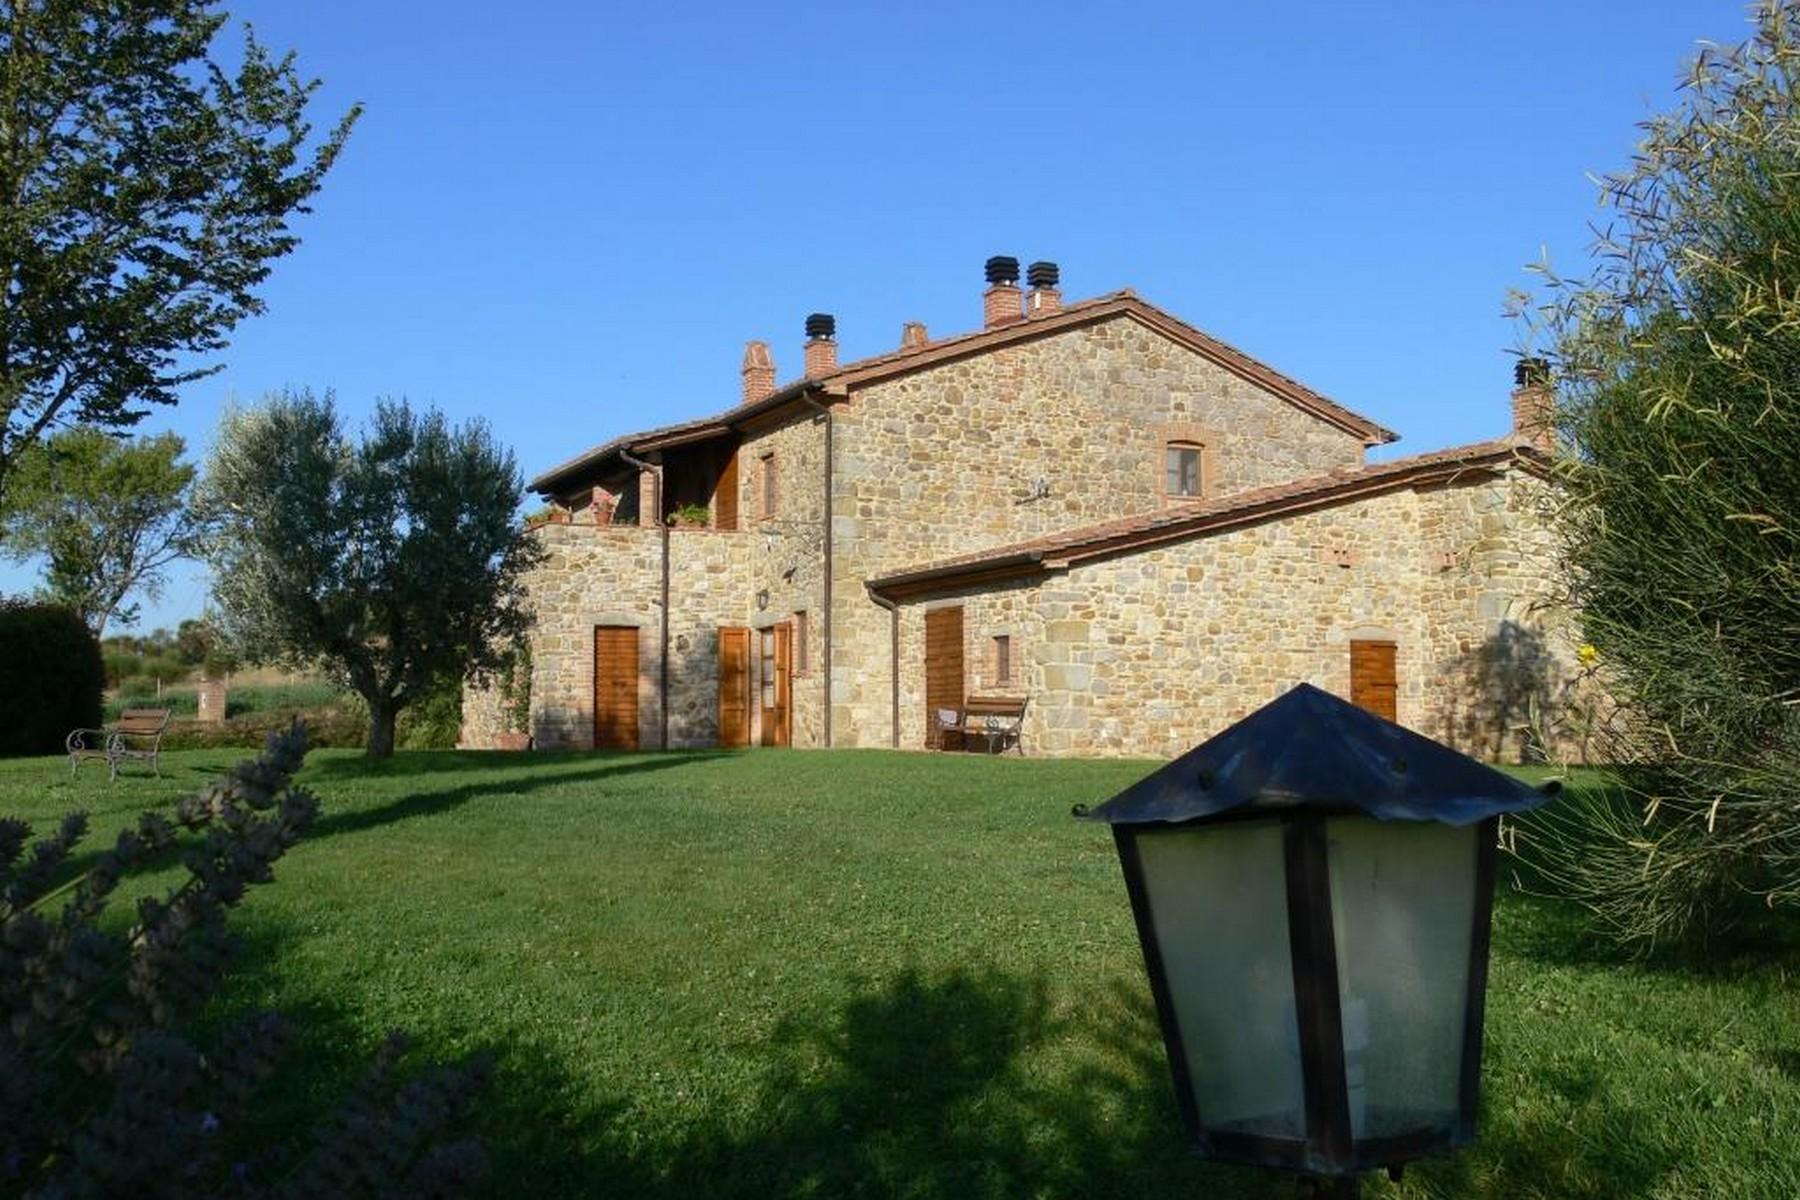 Enchanting farmhouse in Umbrian countryside - 2